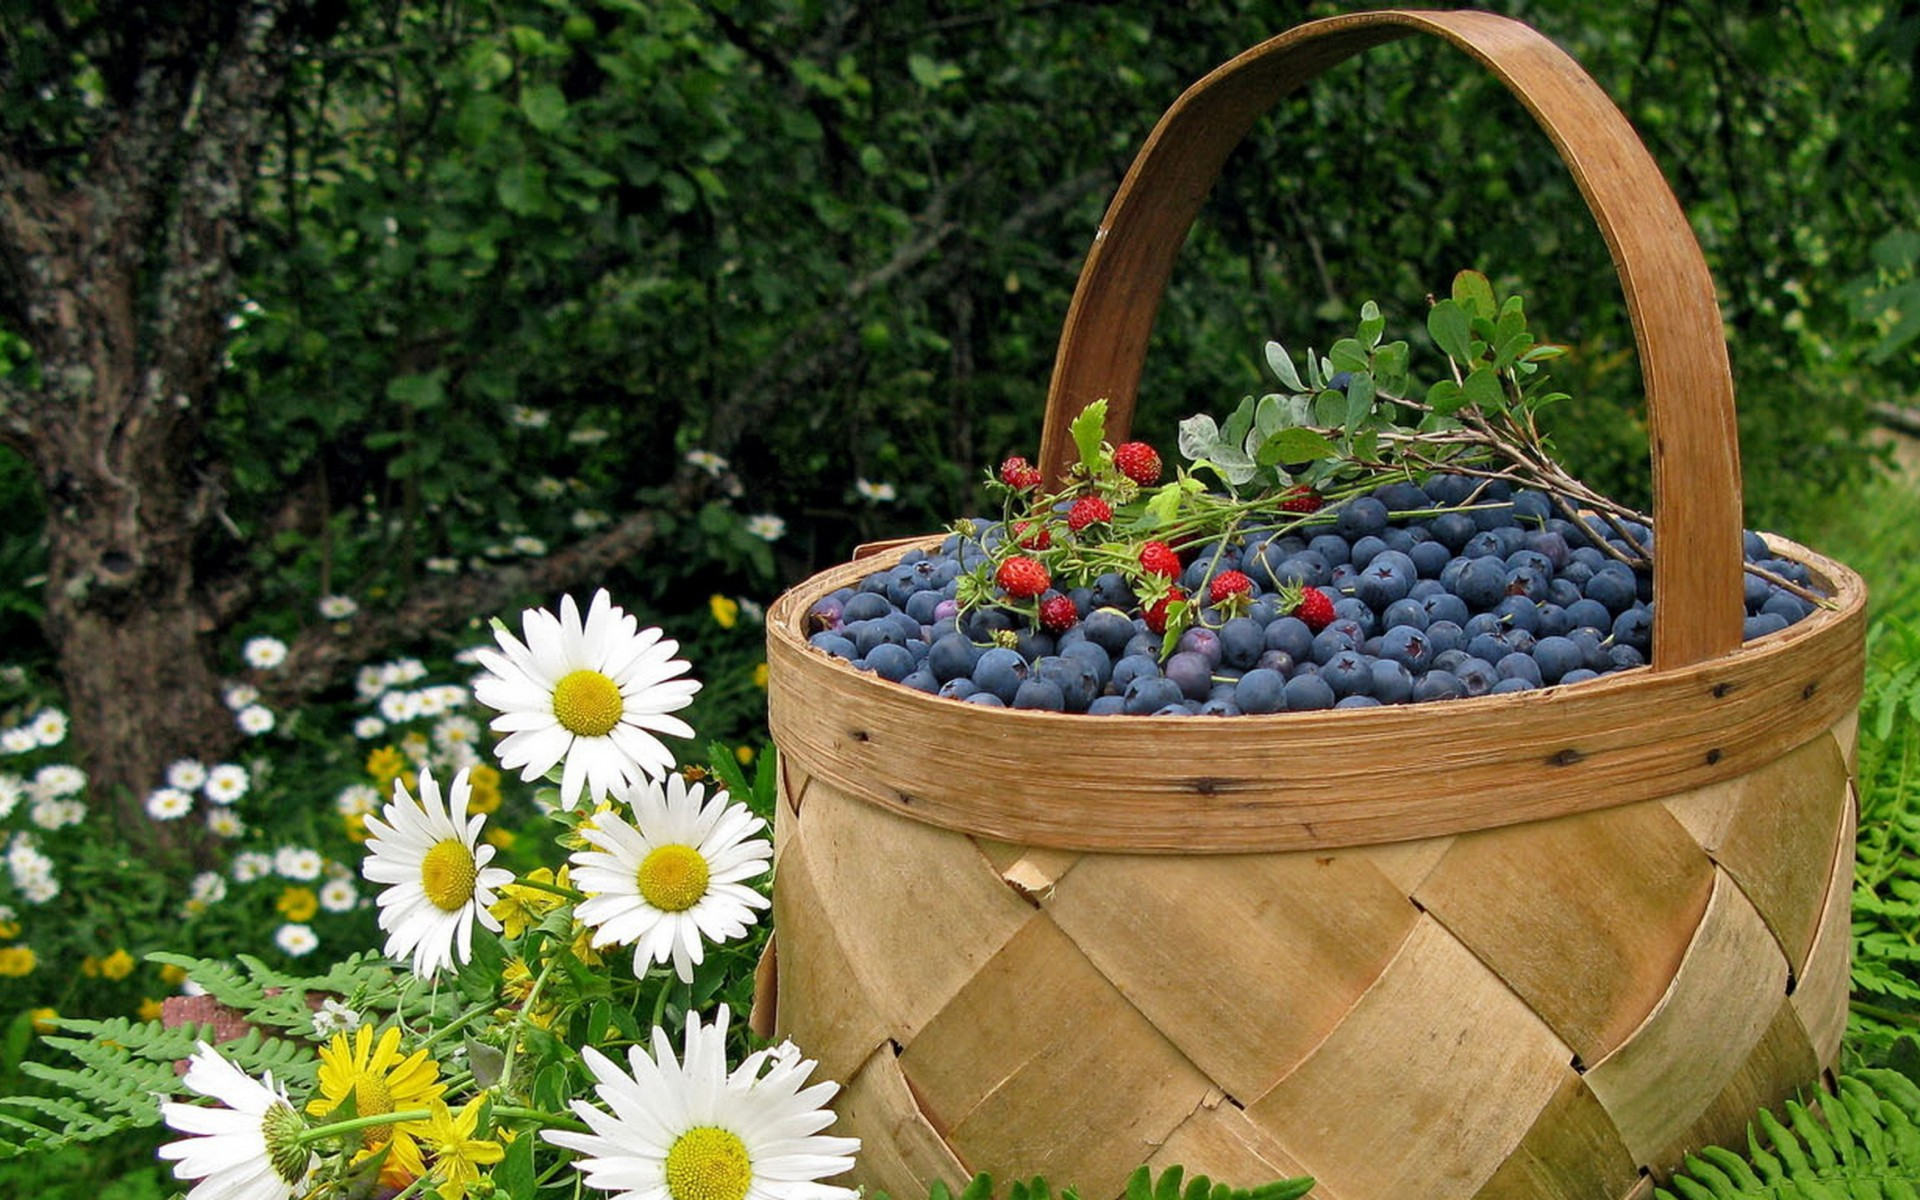 Fruits food baskets ferns blueberries white flowers ...